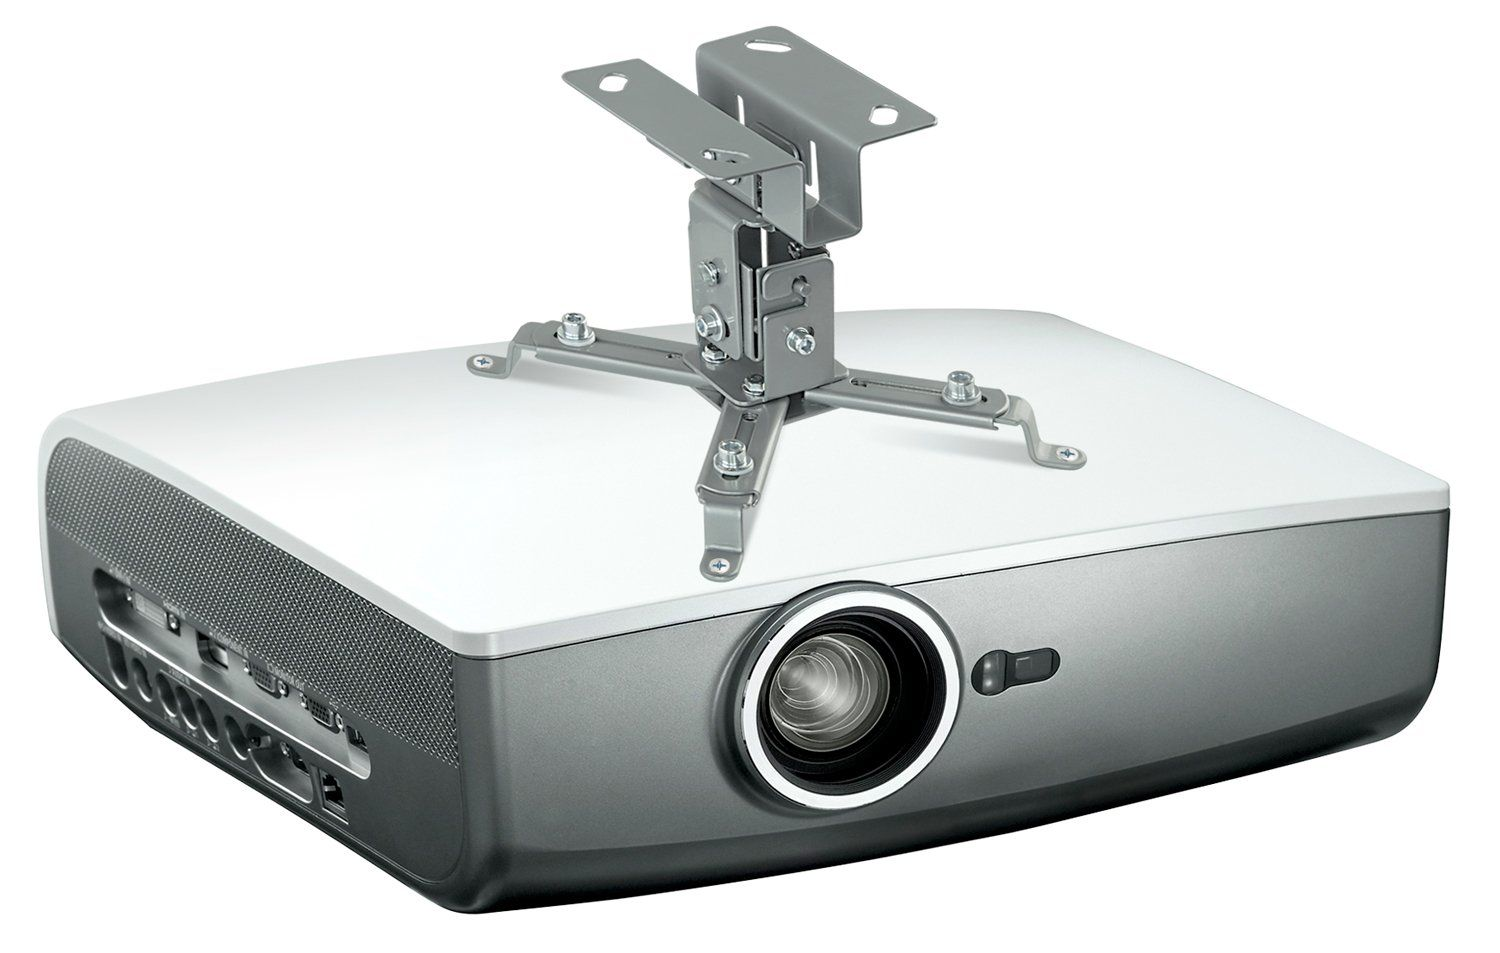 Robot Check Projector Ceiling Mount Projector Projector Mounts